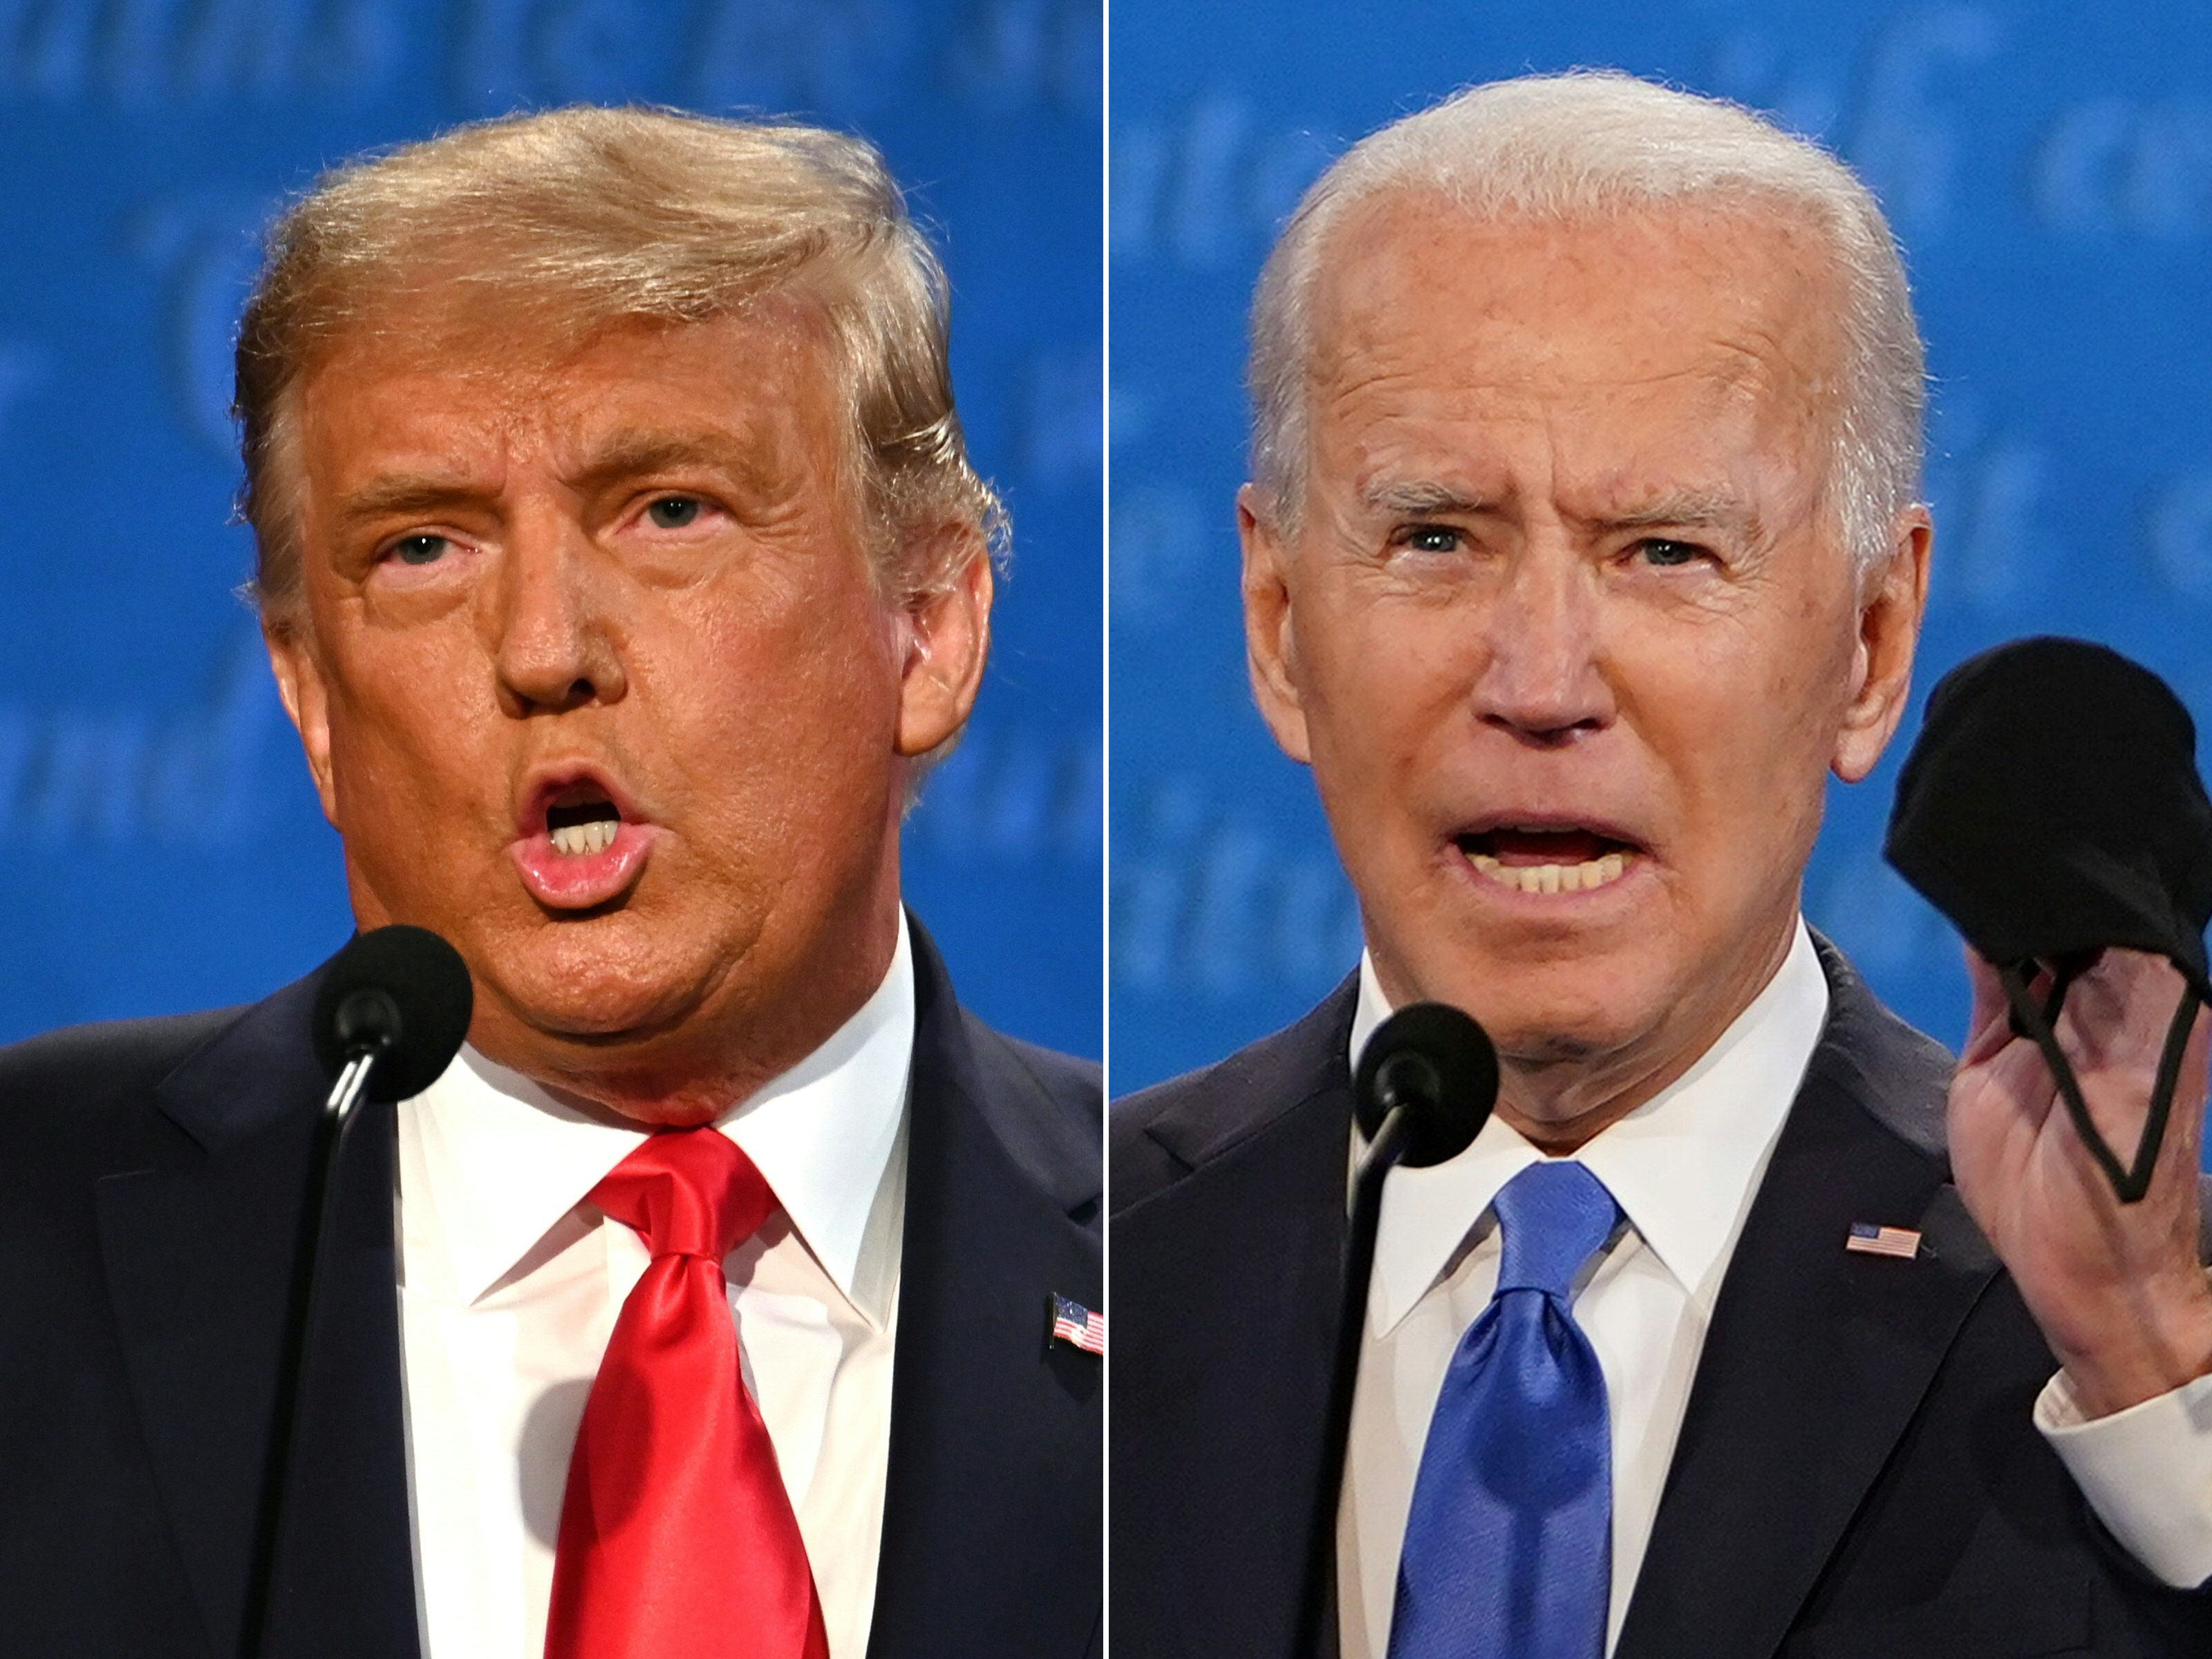 President Donald Trump and Democratic Presidential candidate and former Vice President Joe Biden during the final presidential debate at Belmont University in Nashville, Tennessee, on Thursday.